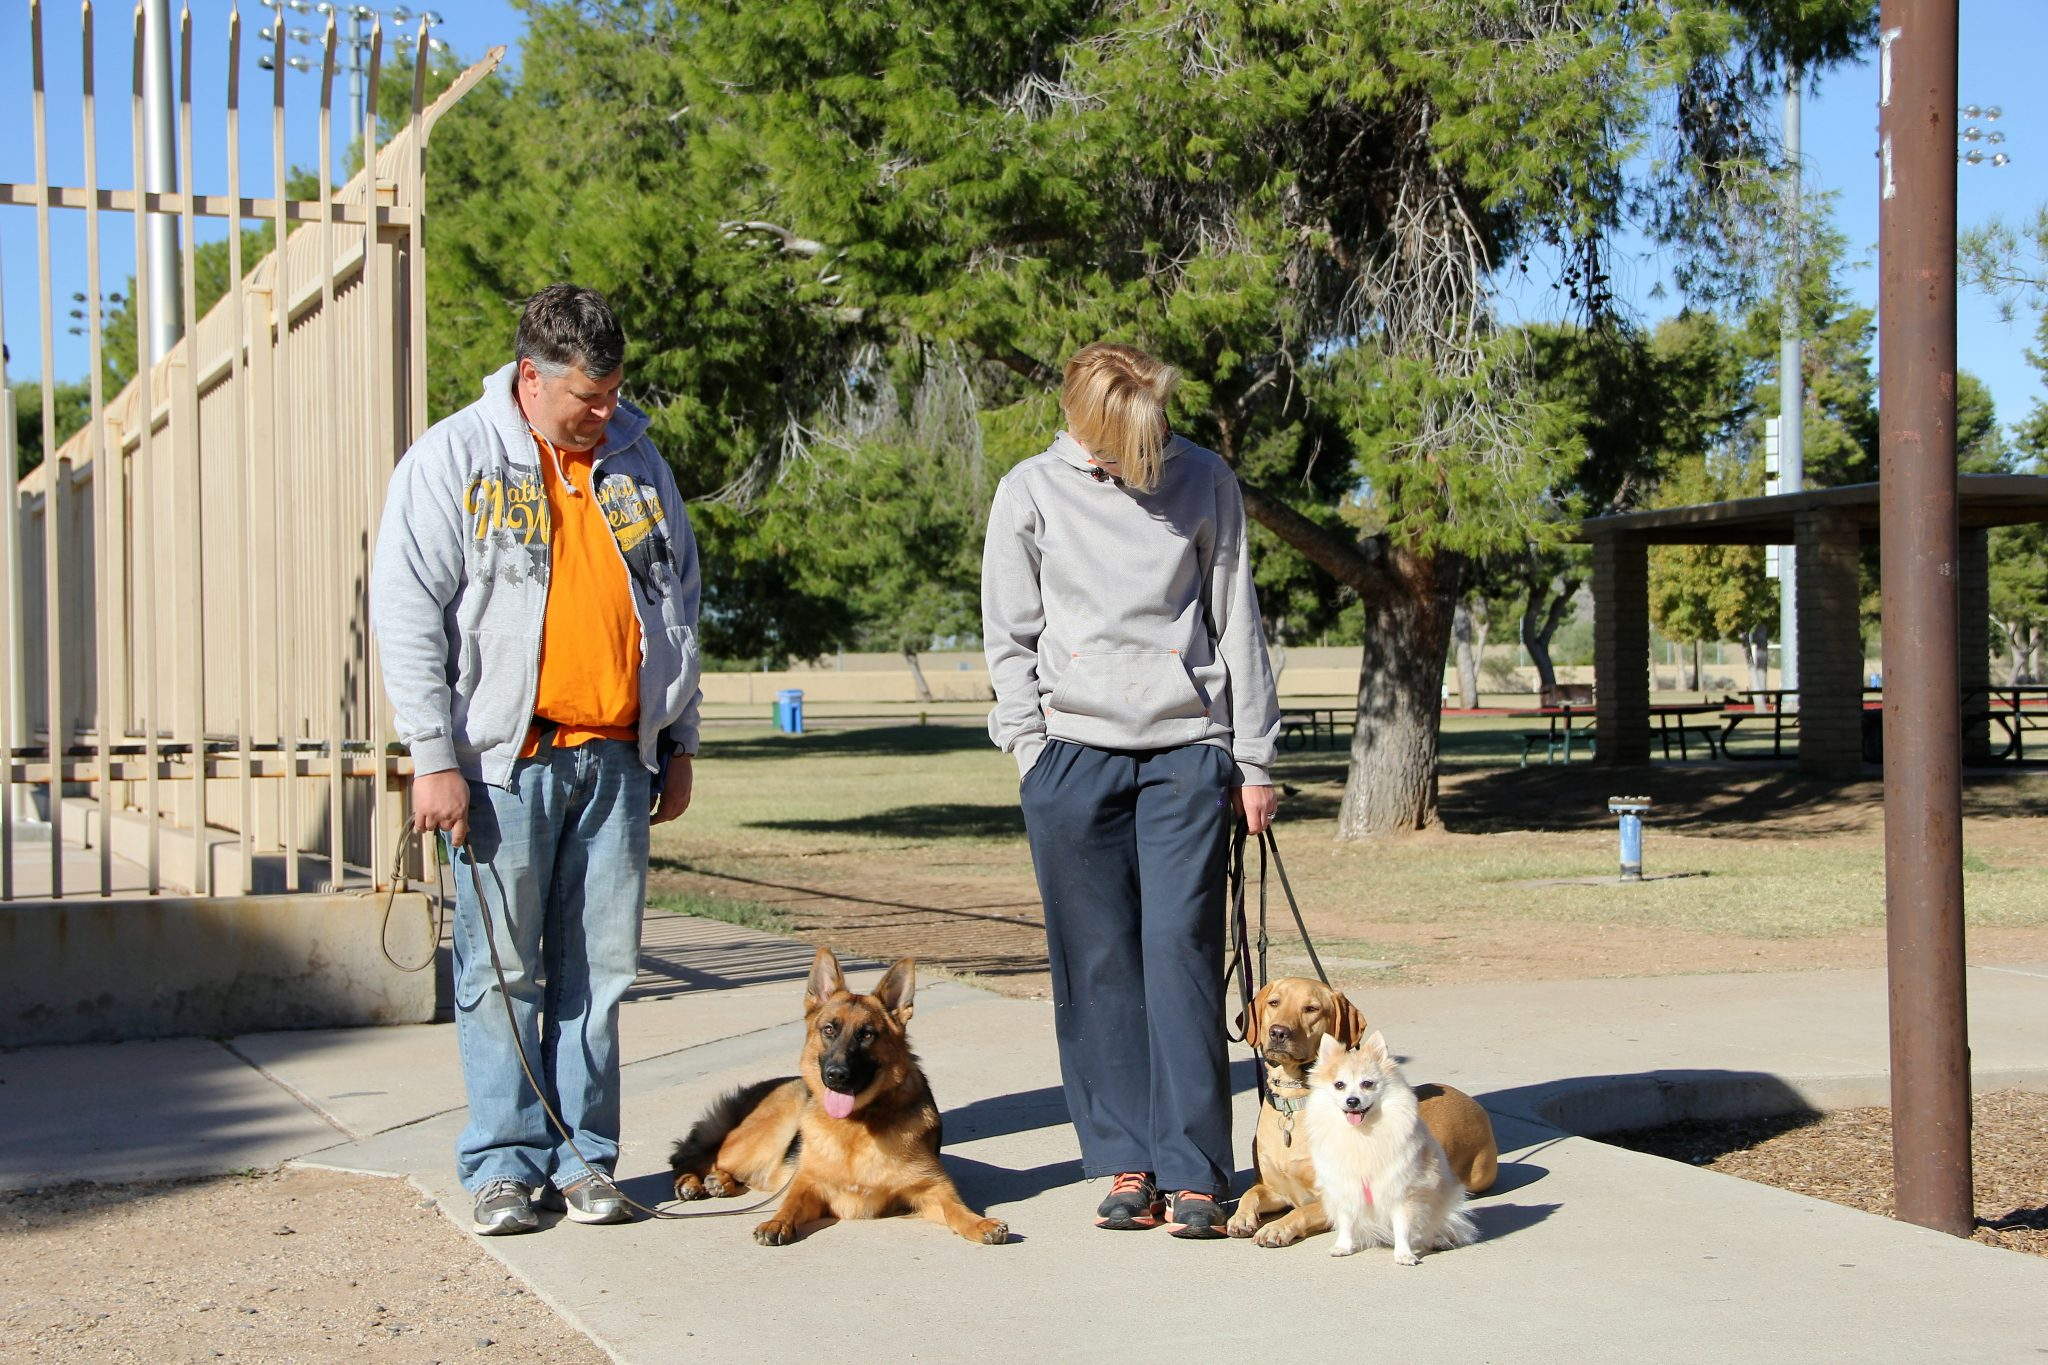 dog training phoenix scottsdale, quality k9, tino reinke, angelika clark